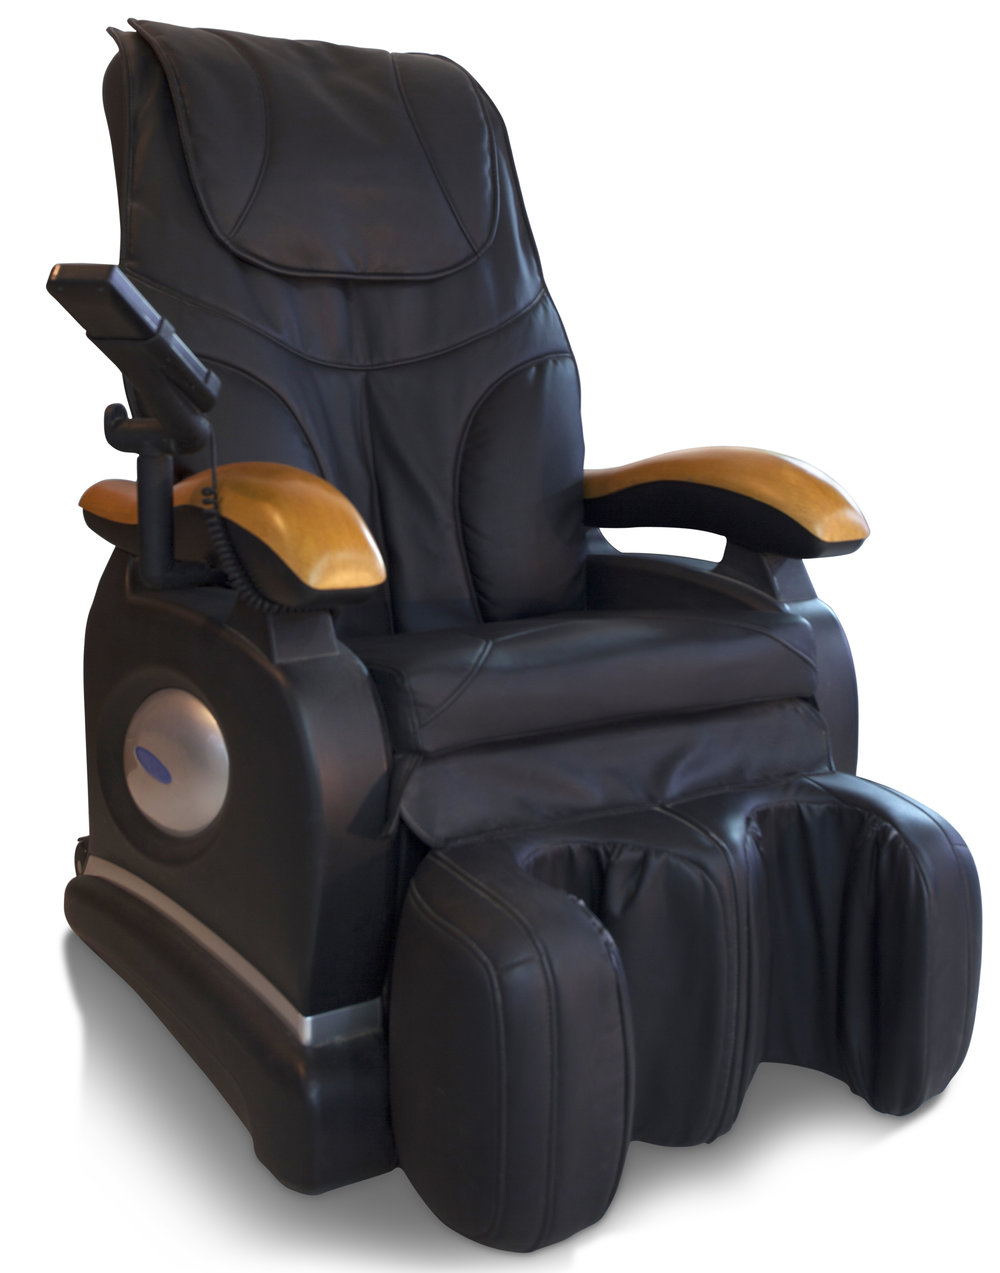 MassageChair-1.jpg